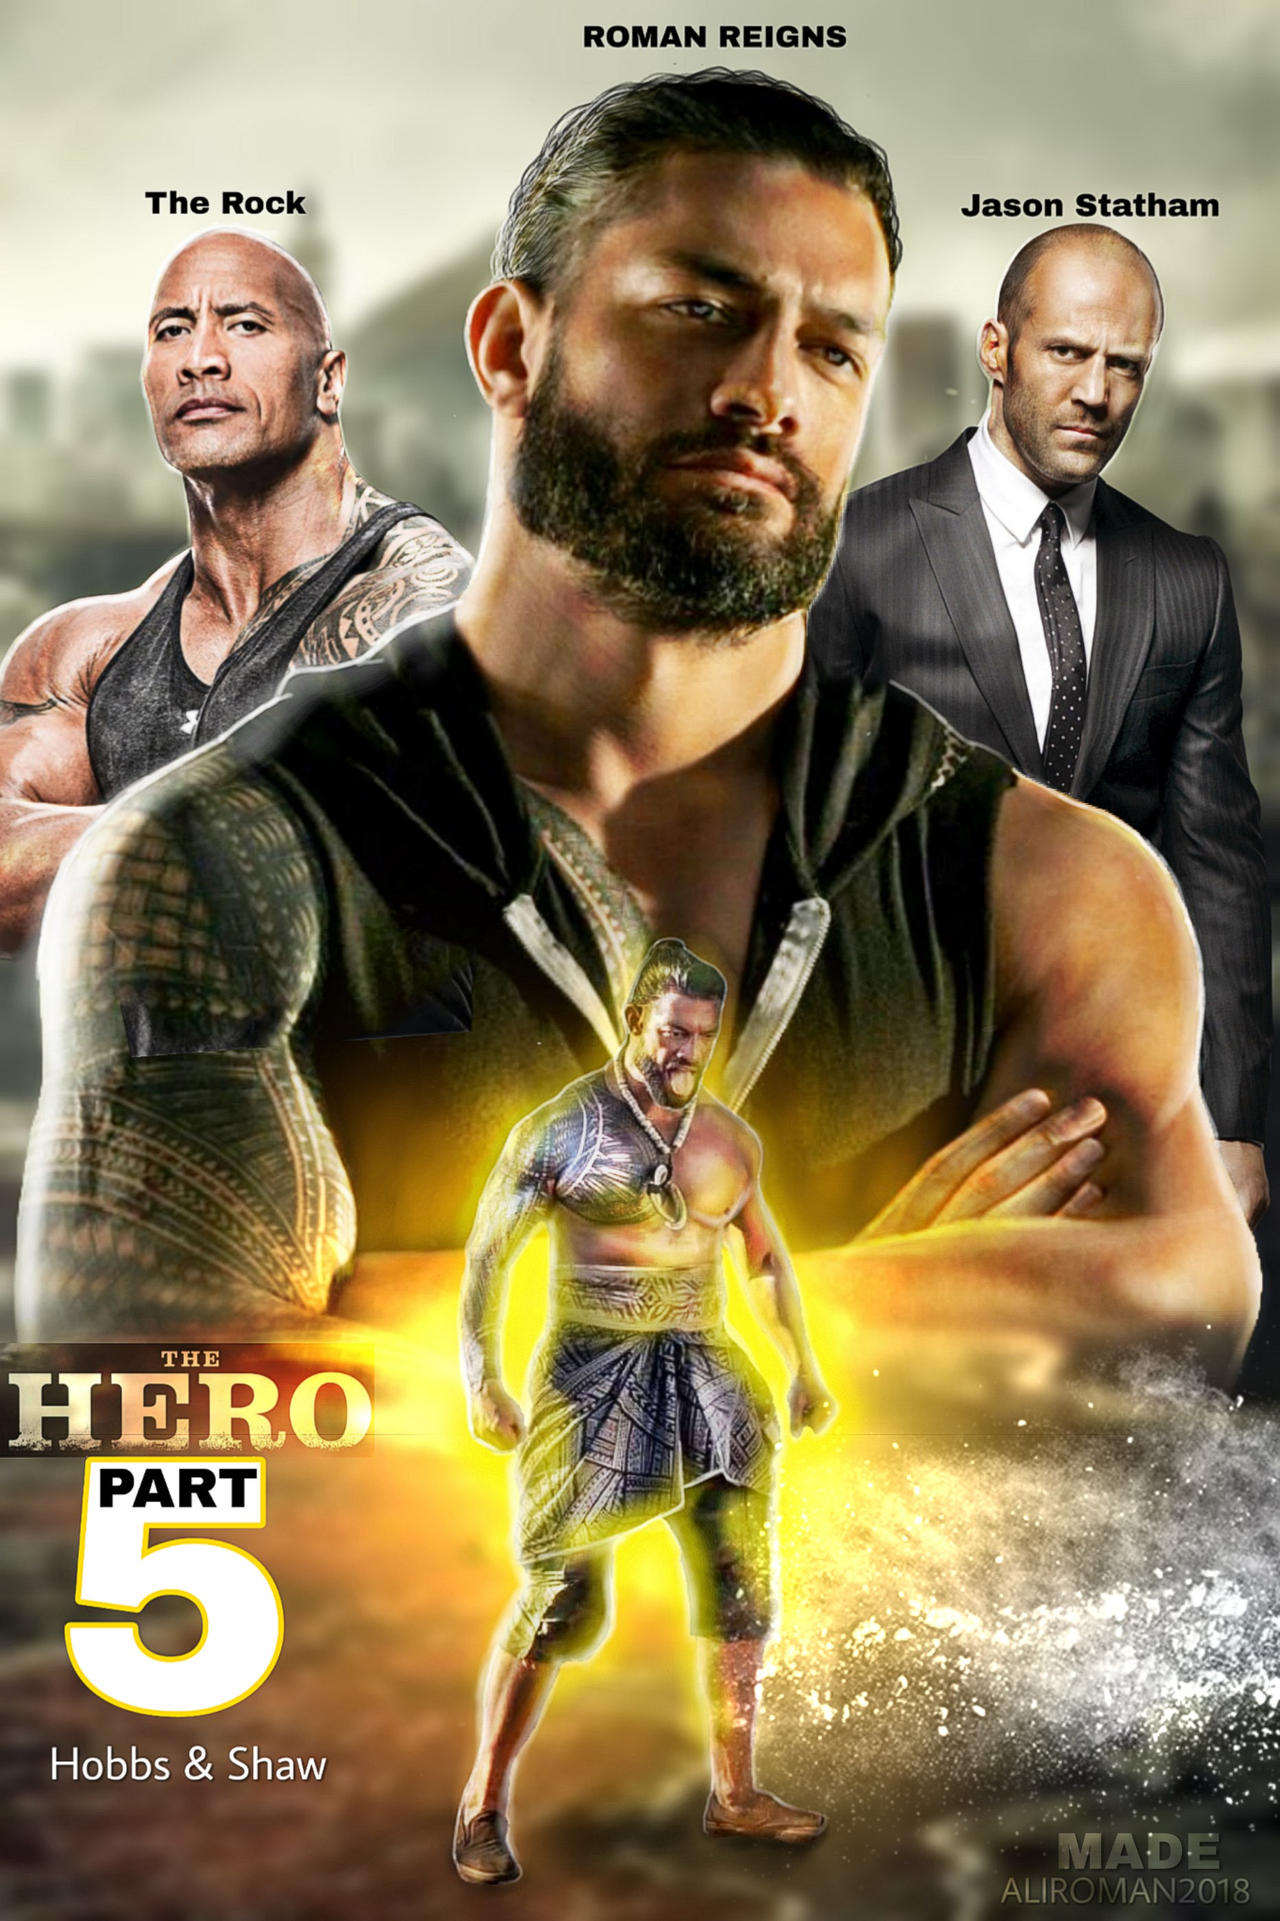 The Hero Part 5 Hobbs And Shaw Poster 2019 By Aliroman2018